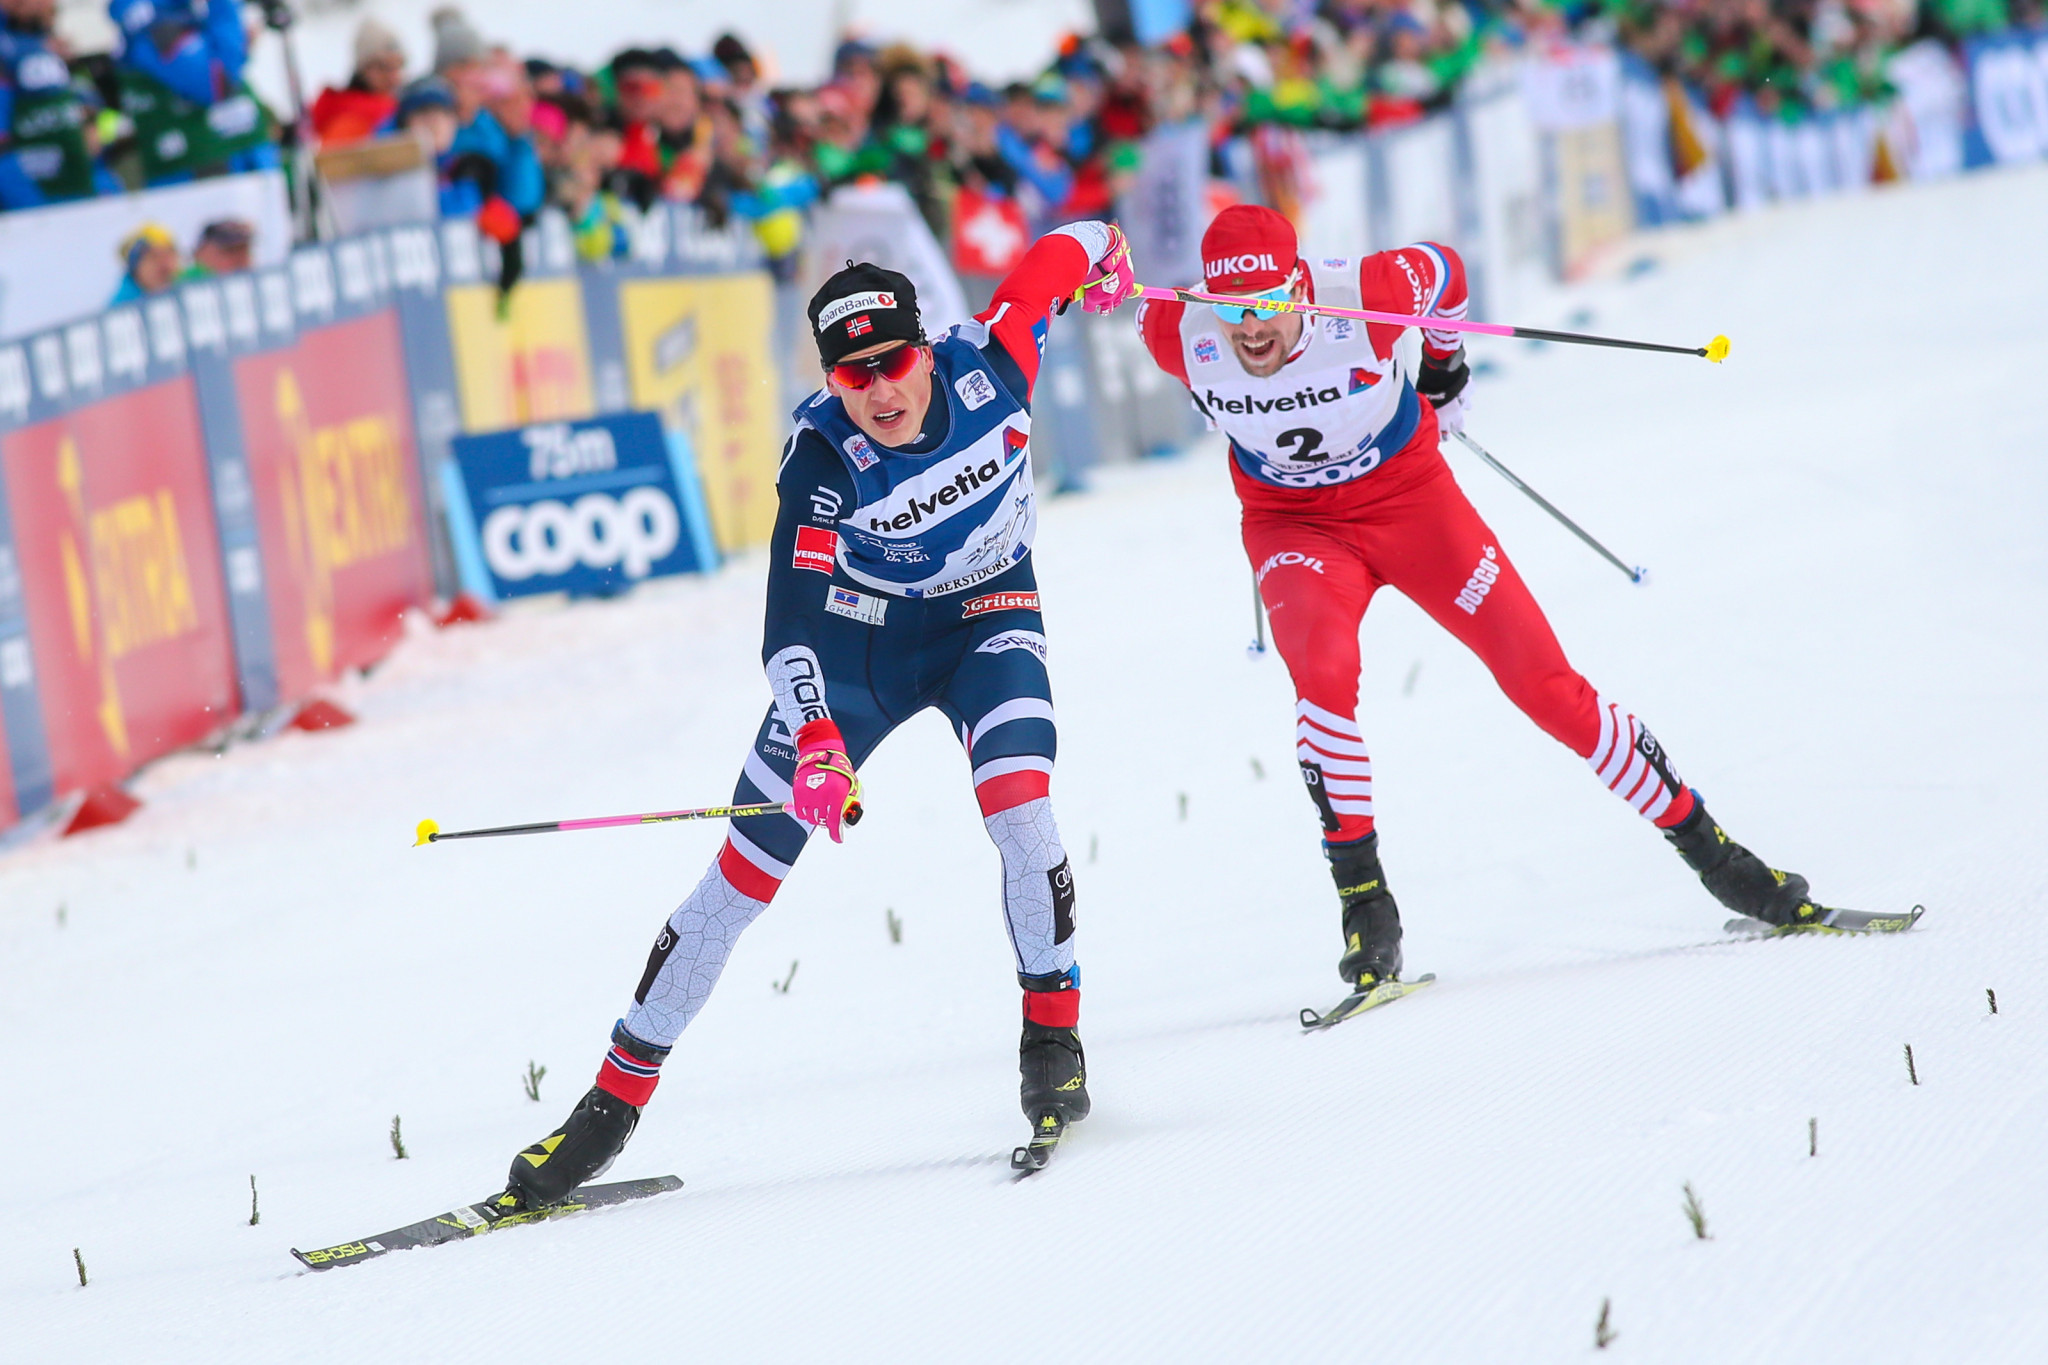 Klaebo and Østberg set for Tour de Ski triumphs after further victories in Val di Fiemme